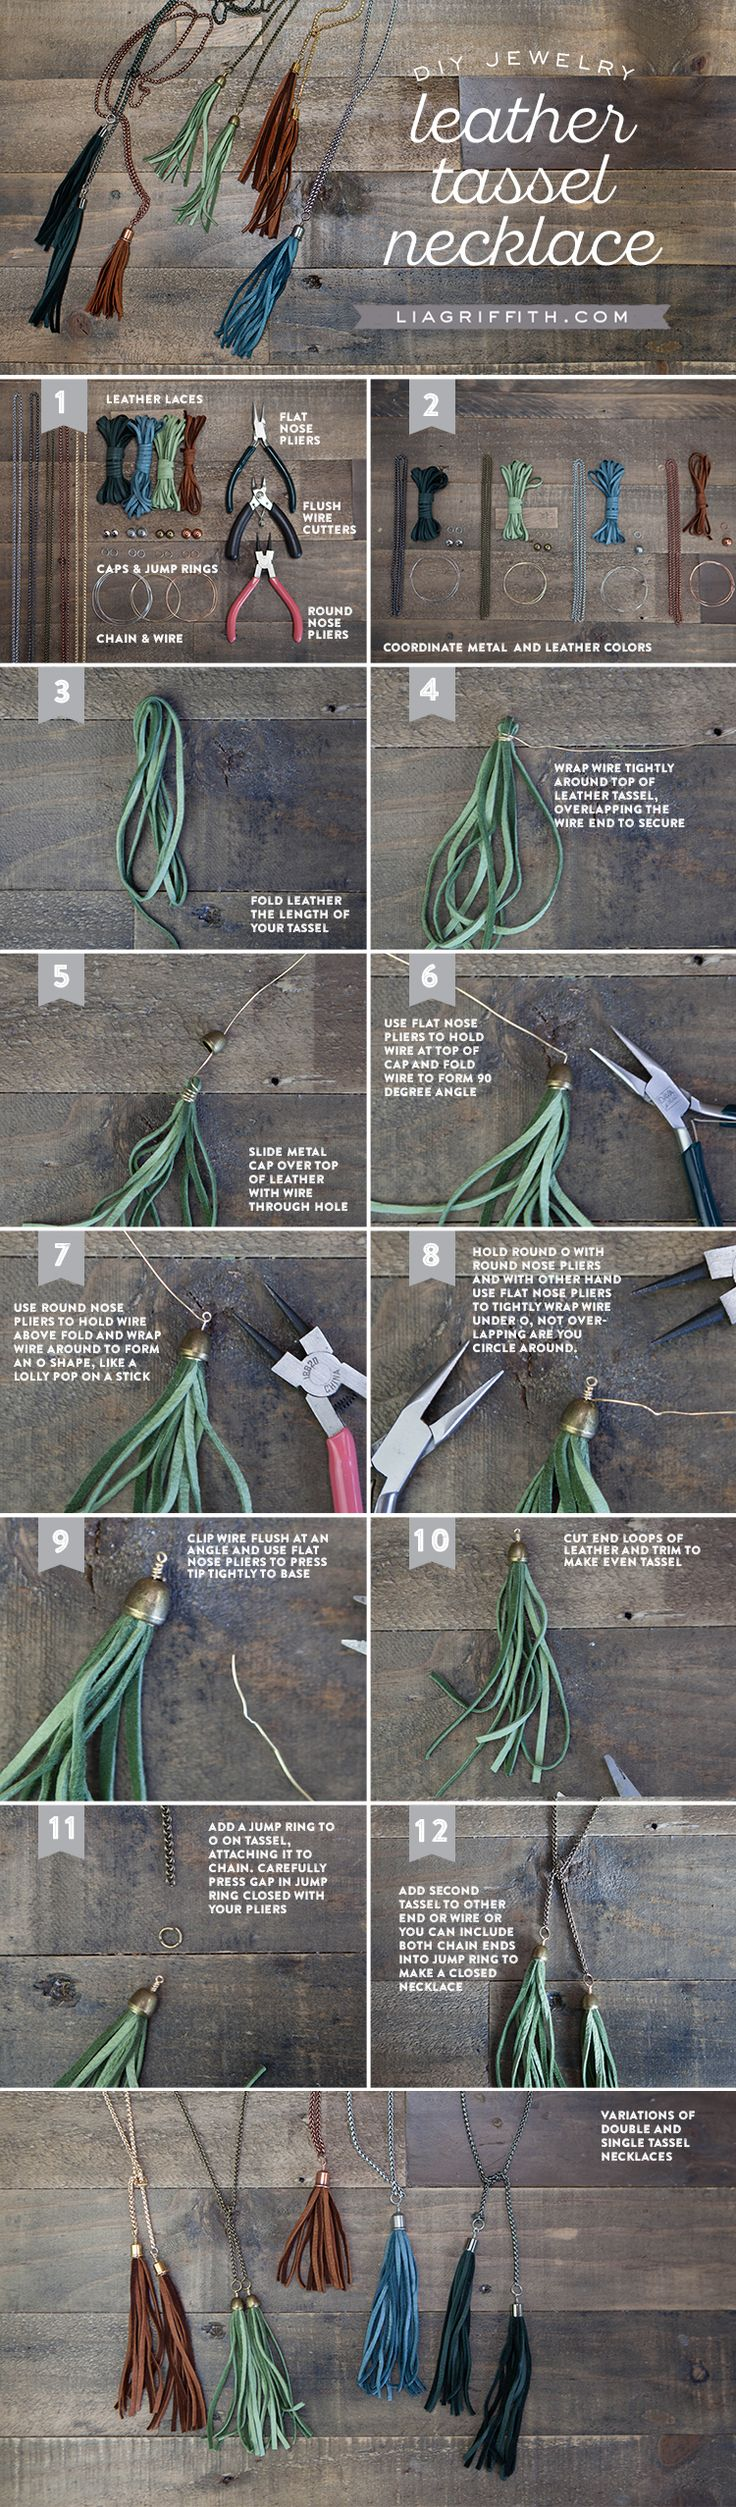 peridot jewelry DIY Leather Tassel Necklace how to by Michaels Makers Lia Griffith